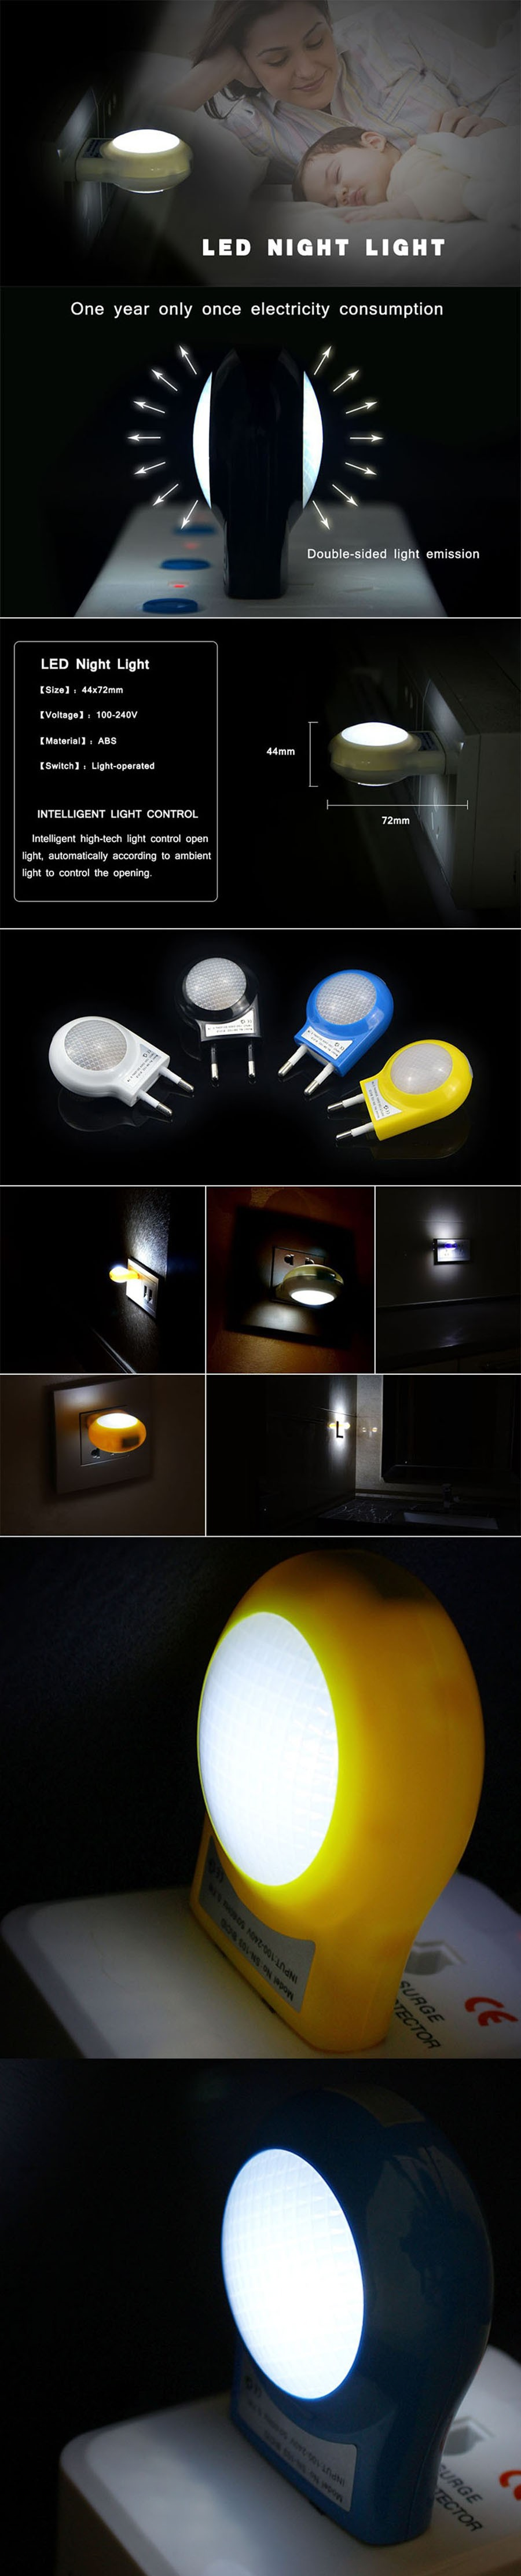 Light sensor led night light 0 7w ac110v 220v sensor for Kids room night light